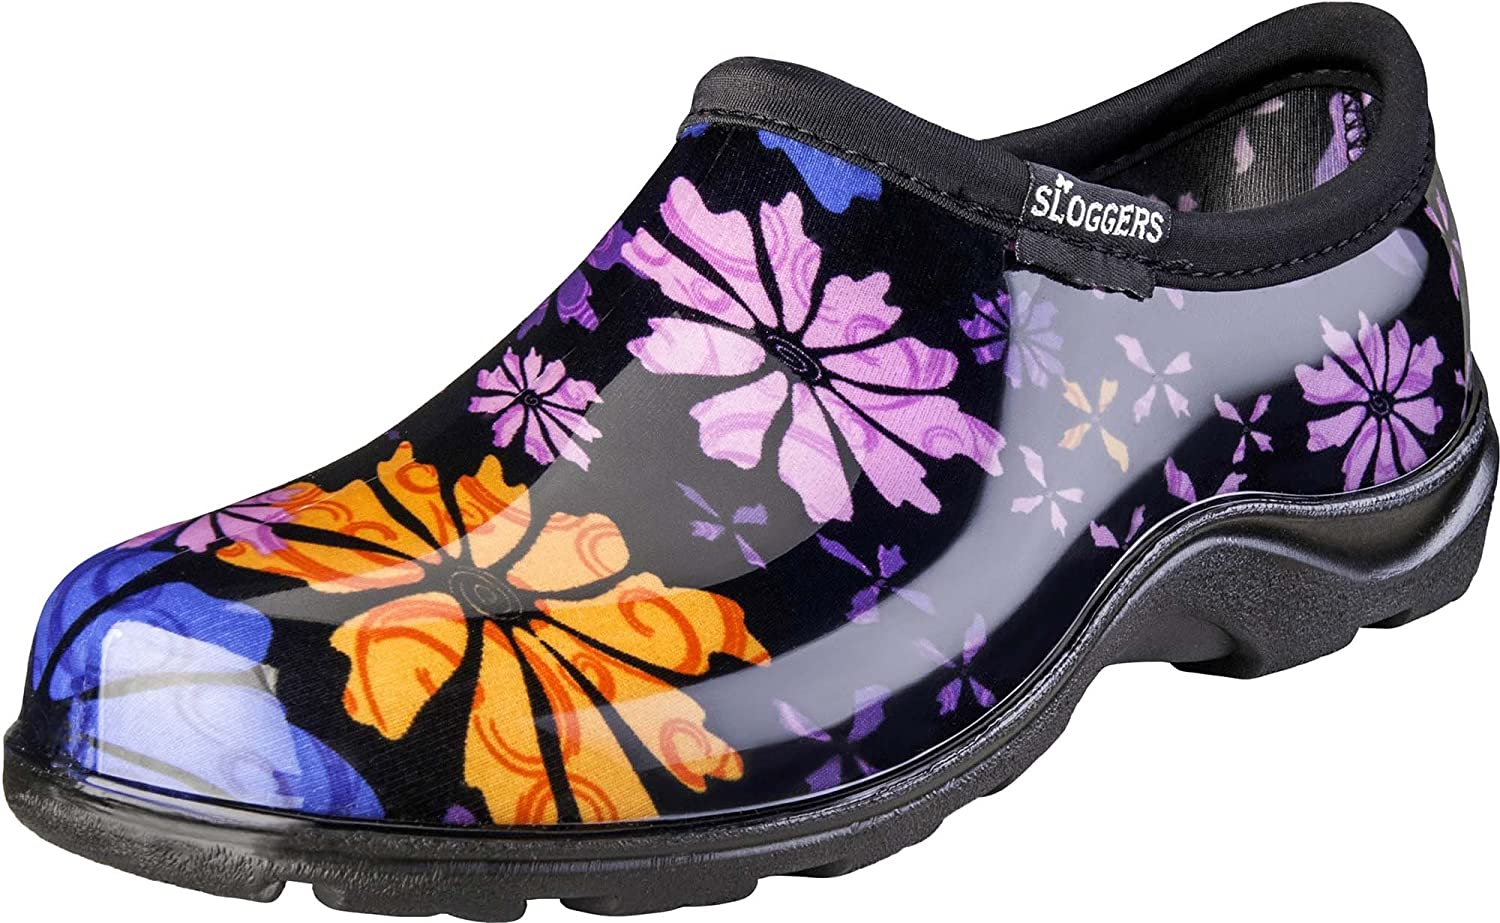 Sloggers Women's WaterproofRain and Garden Shoe with Comfort Insole, Flower Power, Size 11, Style 5116FP11